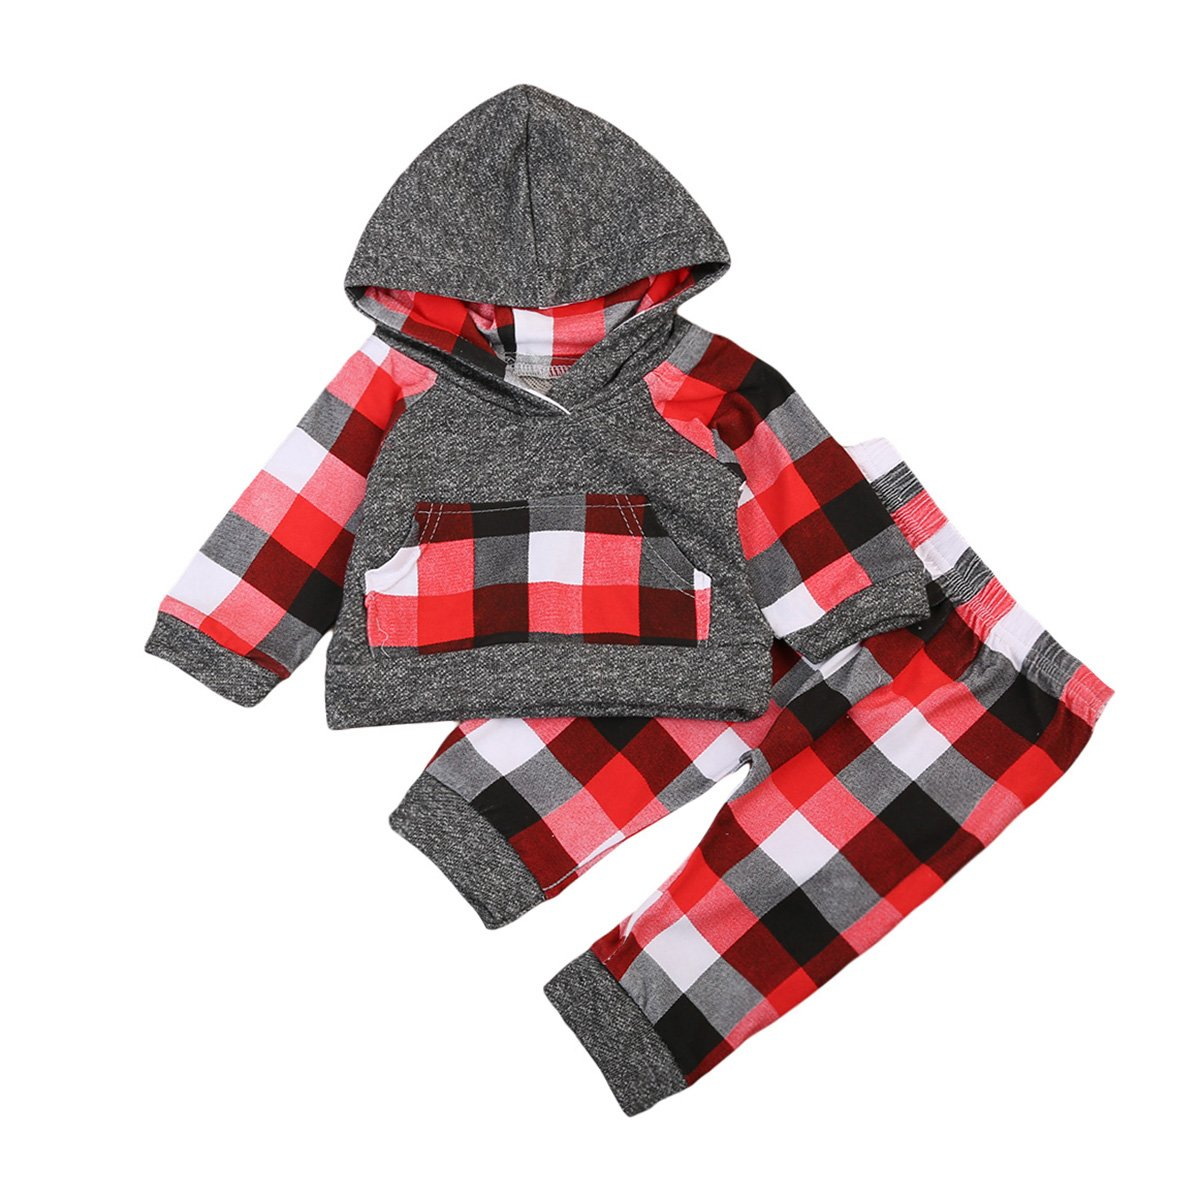 Newborn Baby Boys 2pcs Plaid Warm Outfit Long Sleeve Hoodie with Pocket+Long Pants